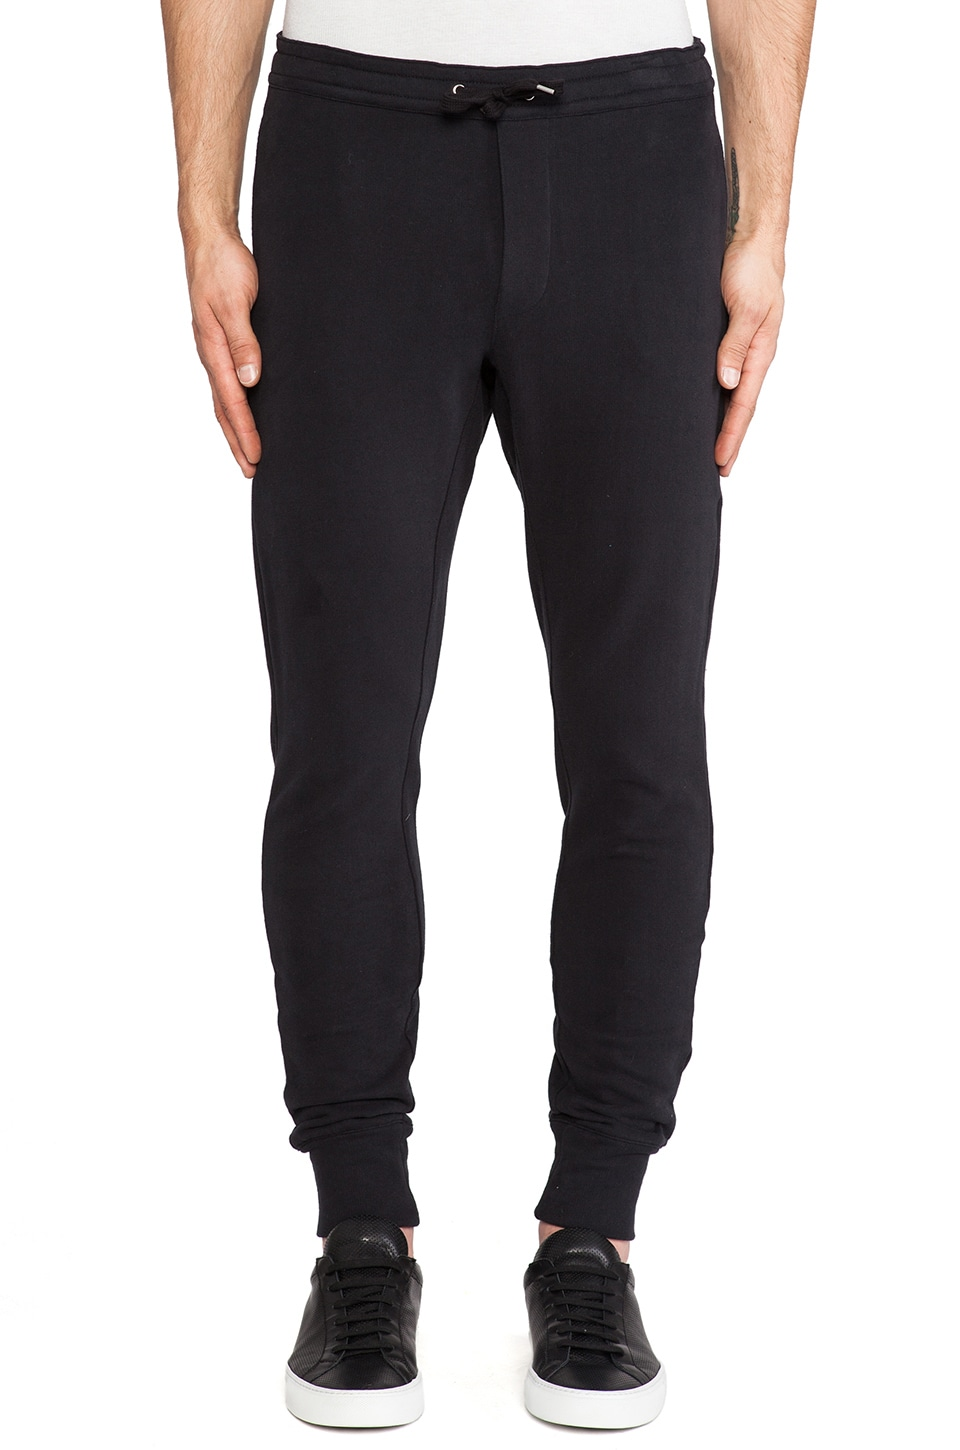 IRO Ruben Jogging Pant in Black